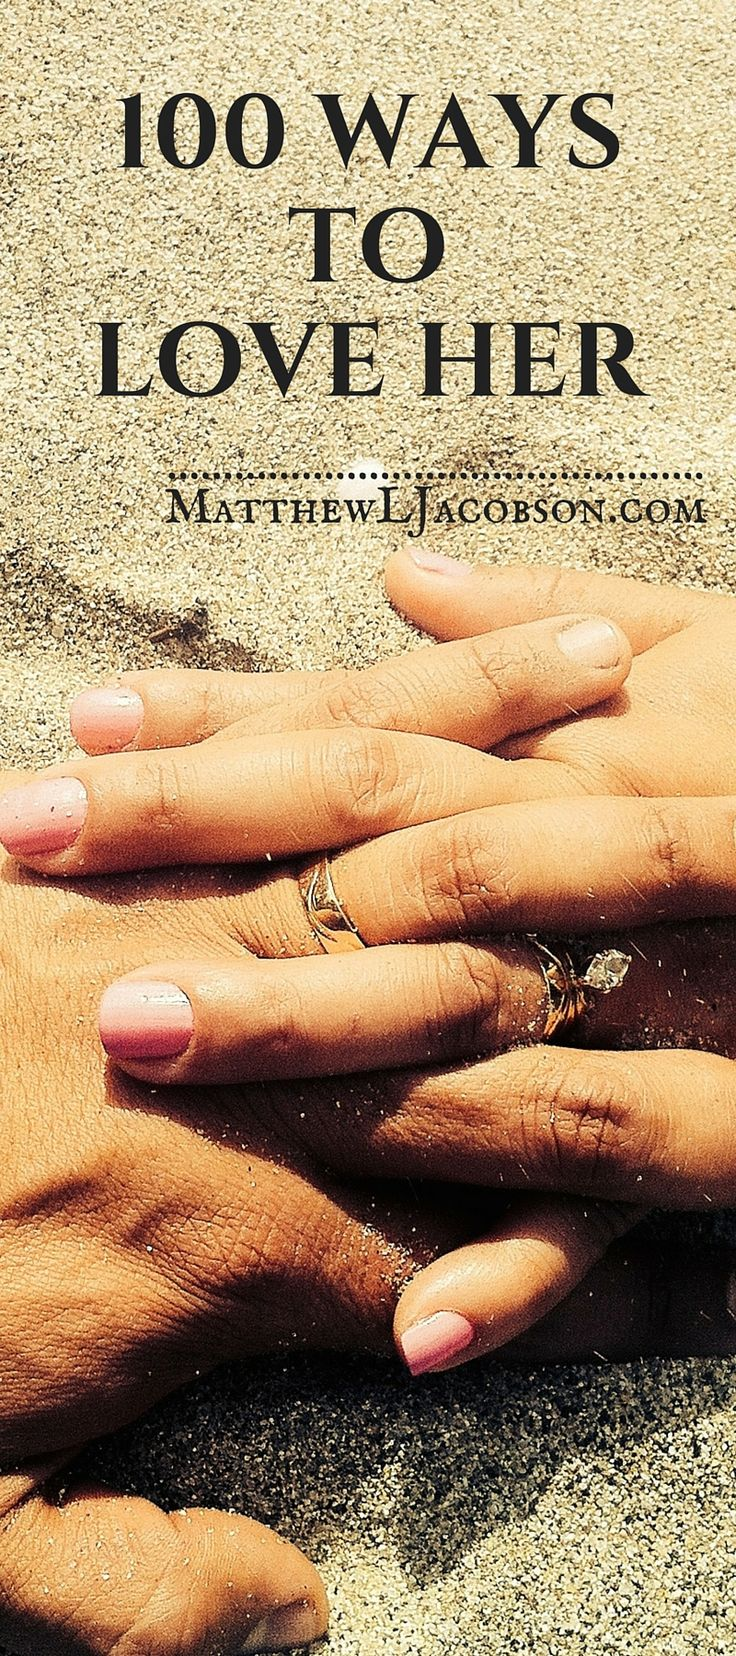 Sometimes men need creative input for keeping things in marriage fresh. This is a short, practical resource for every husband who could use ideas for creatively loving his wife in ways meaningful to her.